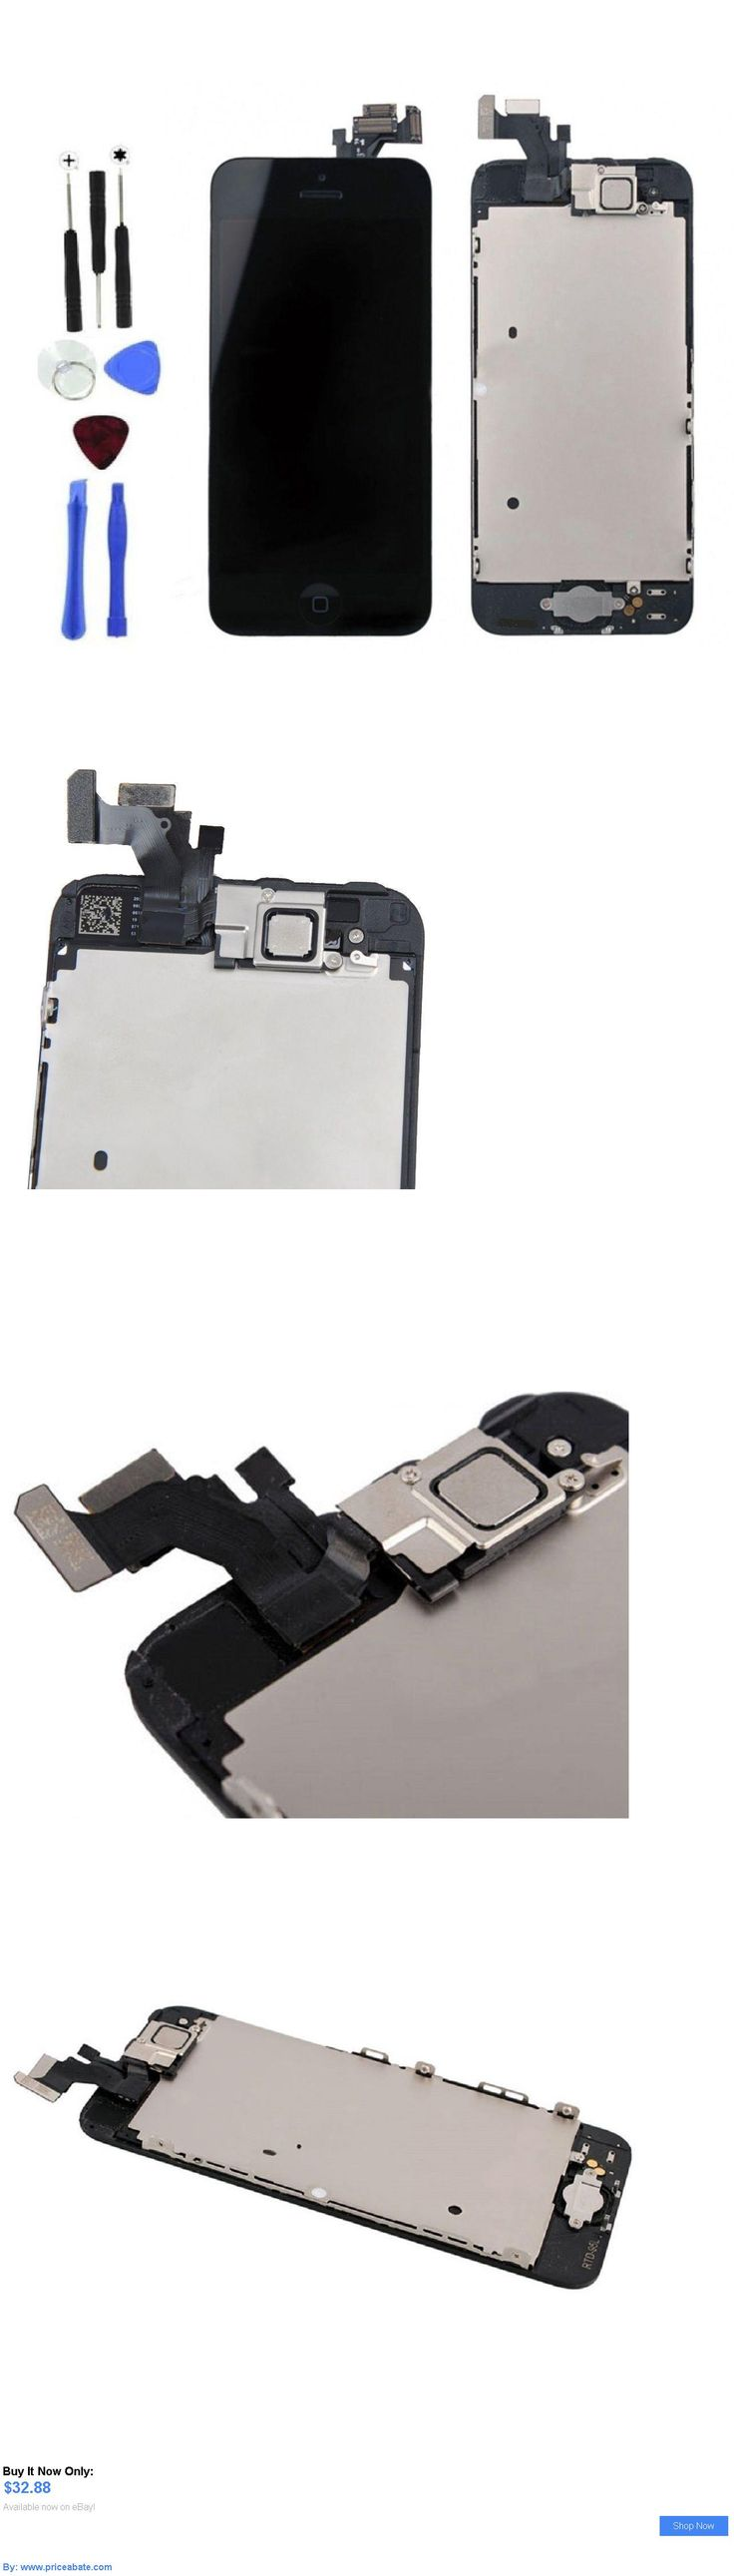 general for sale: Lcd Touch Screen Display Digitizer Assembly Replacement For Iphone 5 Black Tools BUY IT NOW ONLY: $32.88 #priceabategeneralforsale OR #priceabate